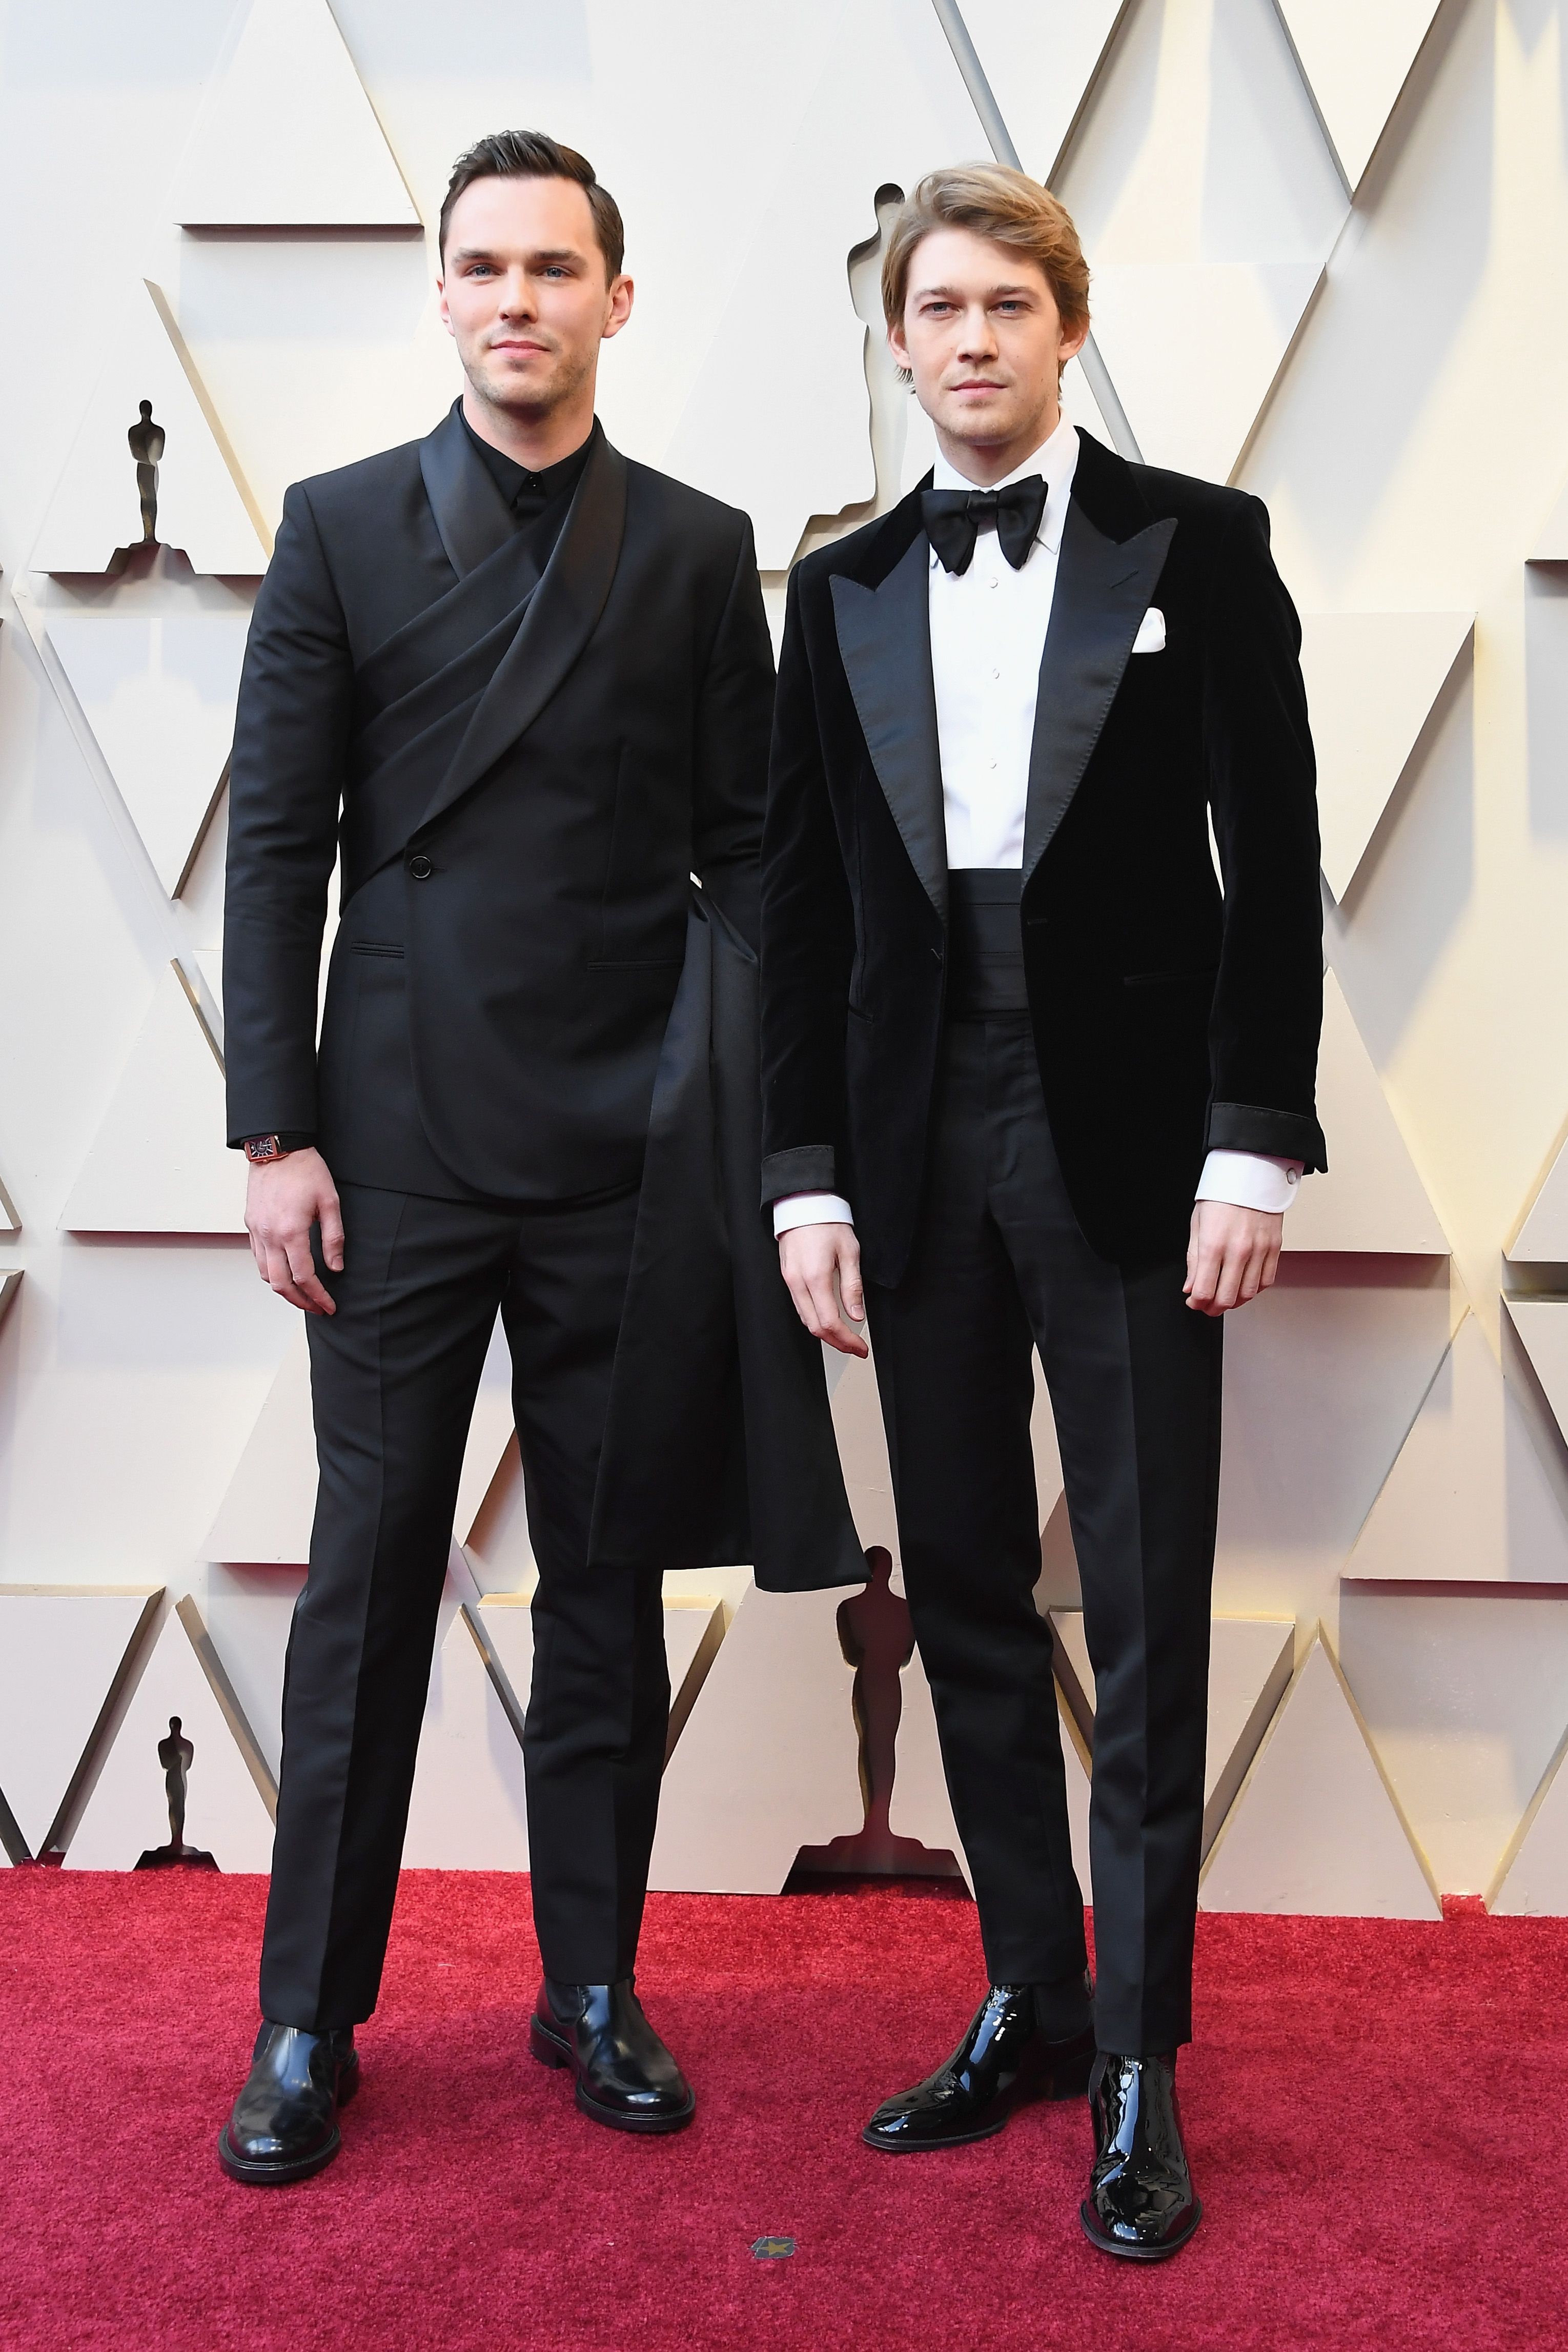 Oscars 2019 Best Dressed Men From The Academy Awards Red Carpet